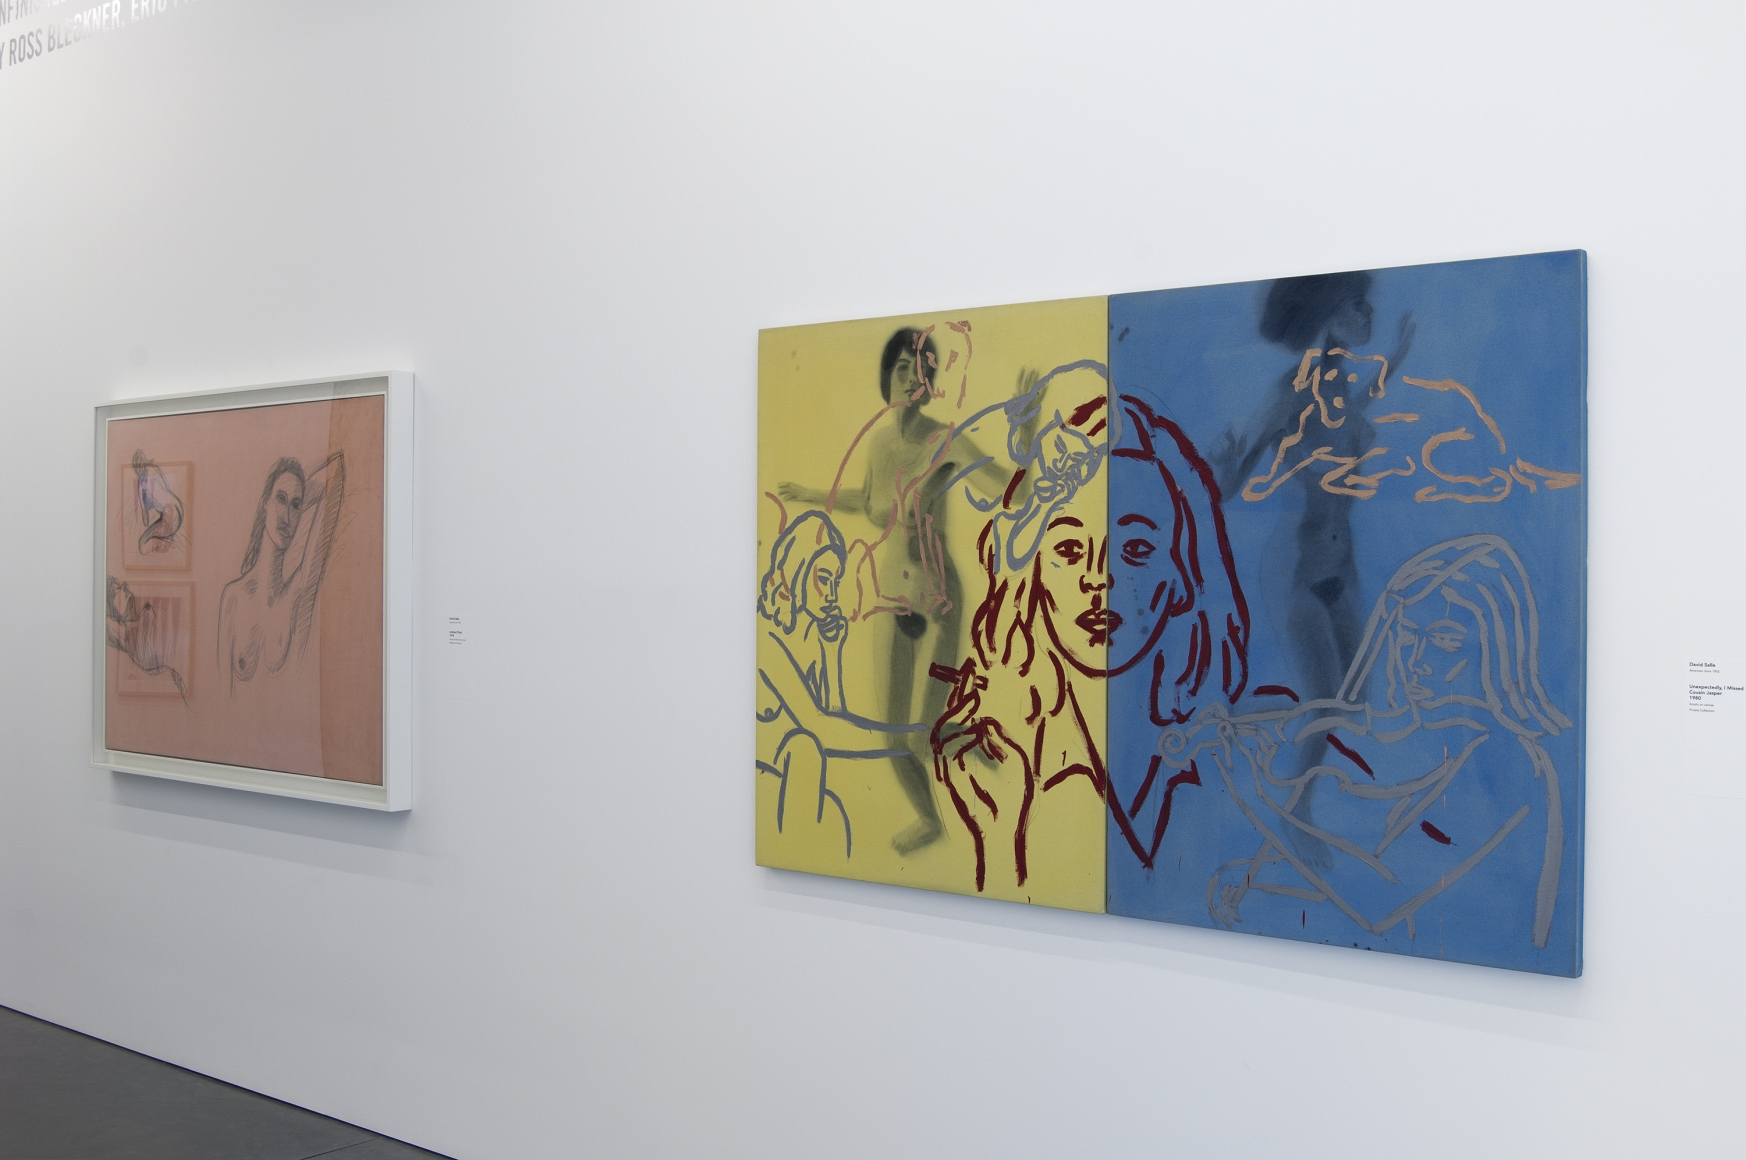 Unfinished Business: Paintings from the 1970s and 1980s by Ross Bleckner, Eric Fischl, and David Salle, Installation view, Parrish Art Museum,Water Mill, New York